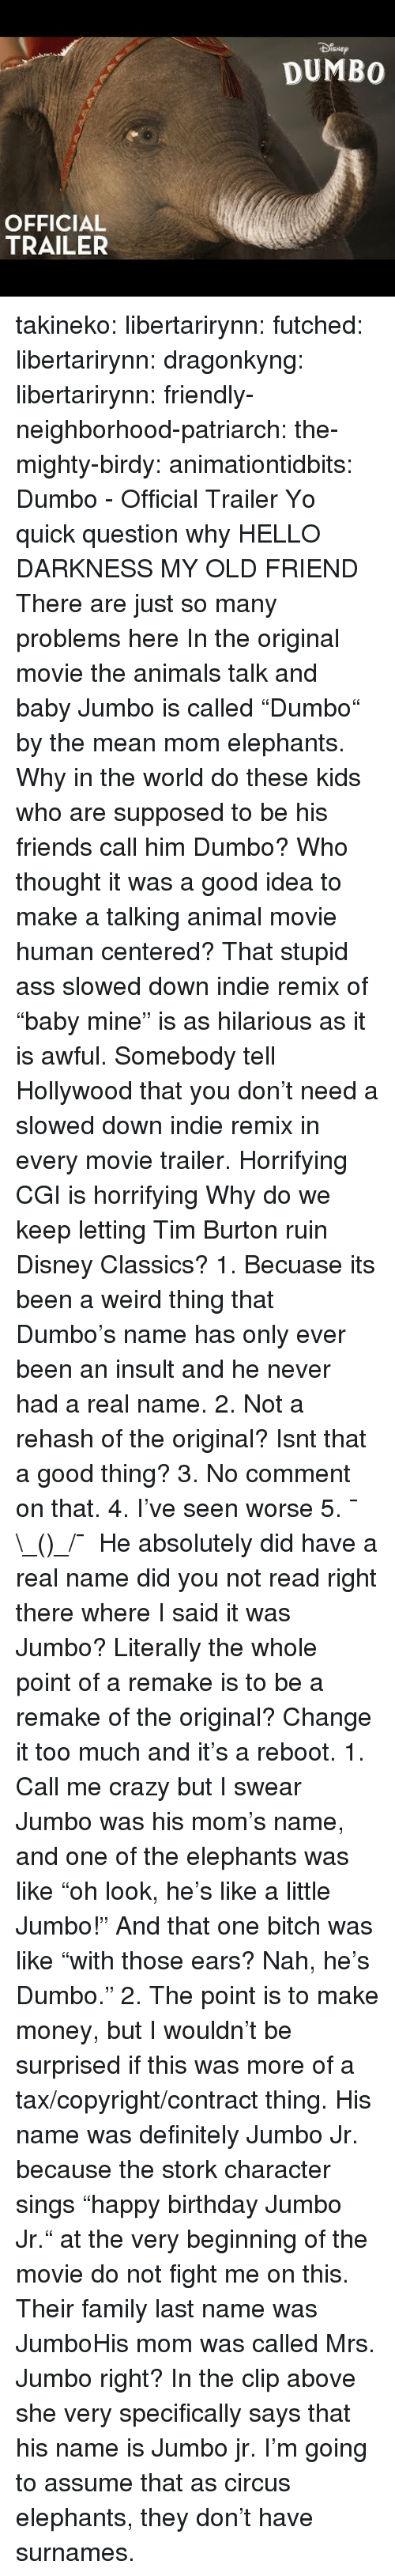 "As It Is: SNEp  DUMBO  OFFICIAL  TRAILER takineko:  libertarirynn: futched:   libertarirynn:   dragonkyng:   libertarirynn:   friendly-neighborhood-patriarch:  the-mighty-birdy:   animationtidbits:  Dumbo - Official Trailer  Yo quick question why   HELLO DARKNESS MY OLD FRIEND   There are just so many problems here In the original movie the animals talk and baby Jumbo is called ""Dumbo"" by the mean mom elephants. Why in the world do these kids who are supposed to be his friends call him Dumbo? Who thought it was a good idea to make a talking animal movie human centered? That stupid ass slowed down indie remix of ""baby mine"" is as hilarious as it is awful. Somebody tell Hollywood that you don't need a slowed down indie remix in every movie trailer. Horrifying CGI is horrifying Why do we keep letting Tim Burton ruin Disney Classics?   1. Becuase its been a weird thing that Dumbo's name has only ever been an insult and he never had a real name. 2. Not a rehash of the original? Isnt that a good thing? 3. No comment on that. 4. I've seen worse 5. ¯\_(ツ)_/¯   He absolutely did have a real name did you not read right there where I said it was Jumbo? Literally the whole point of a remake is to be a remake of the original? Change it too much and it's a reboot.   1. Call me crazy but I swear Jumbo was his mom's name, and one of the elephants was like ""oh look, he's like a little Jumbo!"" And that one bitch was like ""with those ears? Nah, he's Dumbo."" 2. The point is to make money, but I wouldn't be surprised if this was more of a tax/copyright/contract thing.   His name was definitely Jumbo Jr. because the stork character sings ""happy birthday Jumbo Jr."" at the very beginning of the movie do not fight me on this.  Their family last name was JumboHis mom was called Mrs. Jumbo right?  In the clip above she very specifically says that his name is Jumbo jr. I'm going to assume that as circus elephants, they don't have surnames."